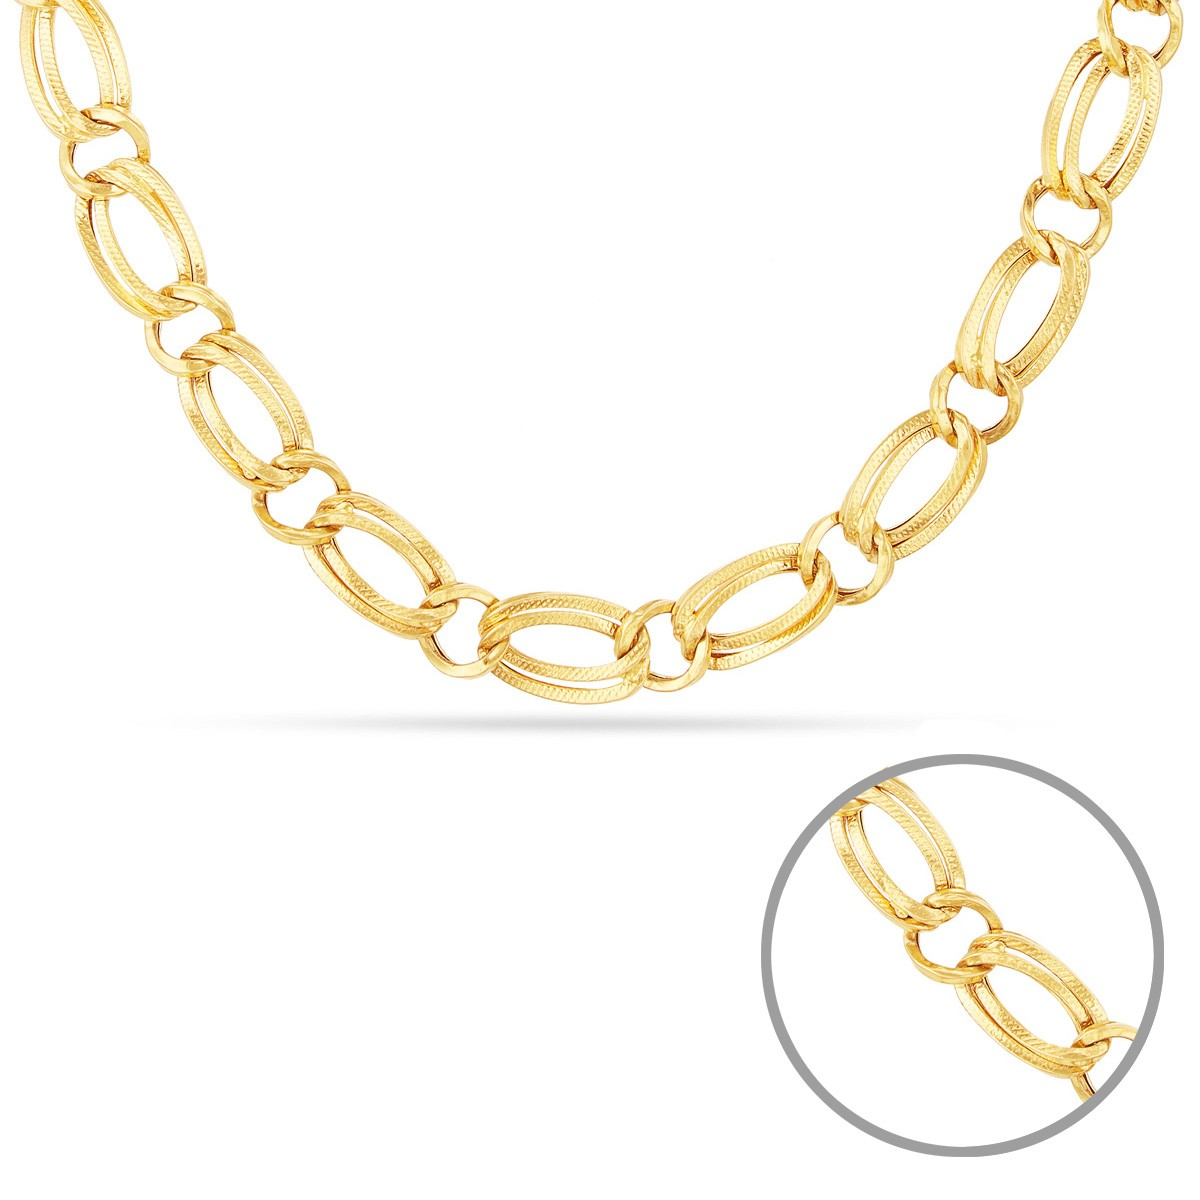 Buy Indo-Italian Design Gold Chain | Buy Mens Gold Chain | Buy ...